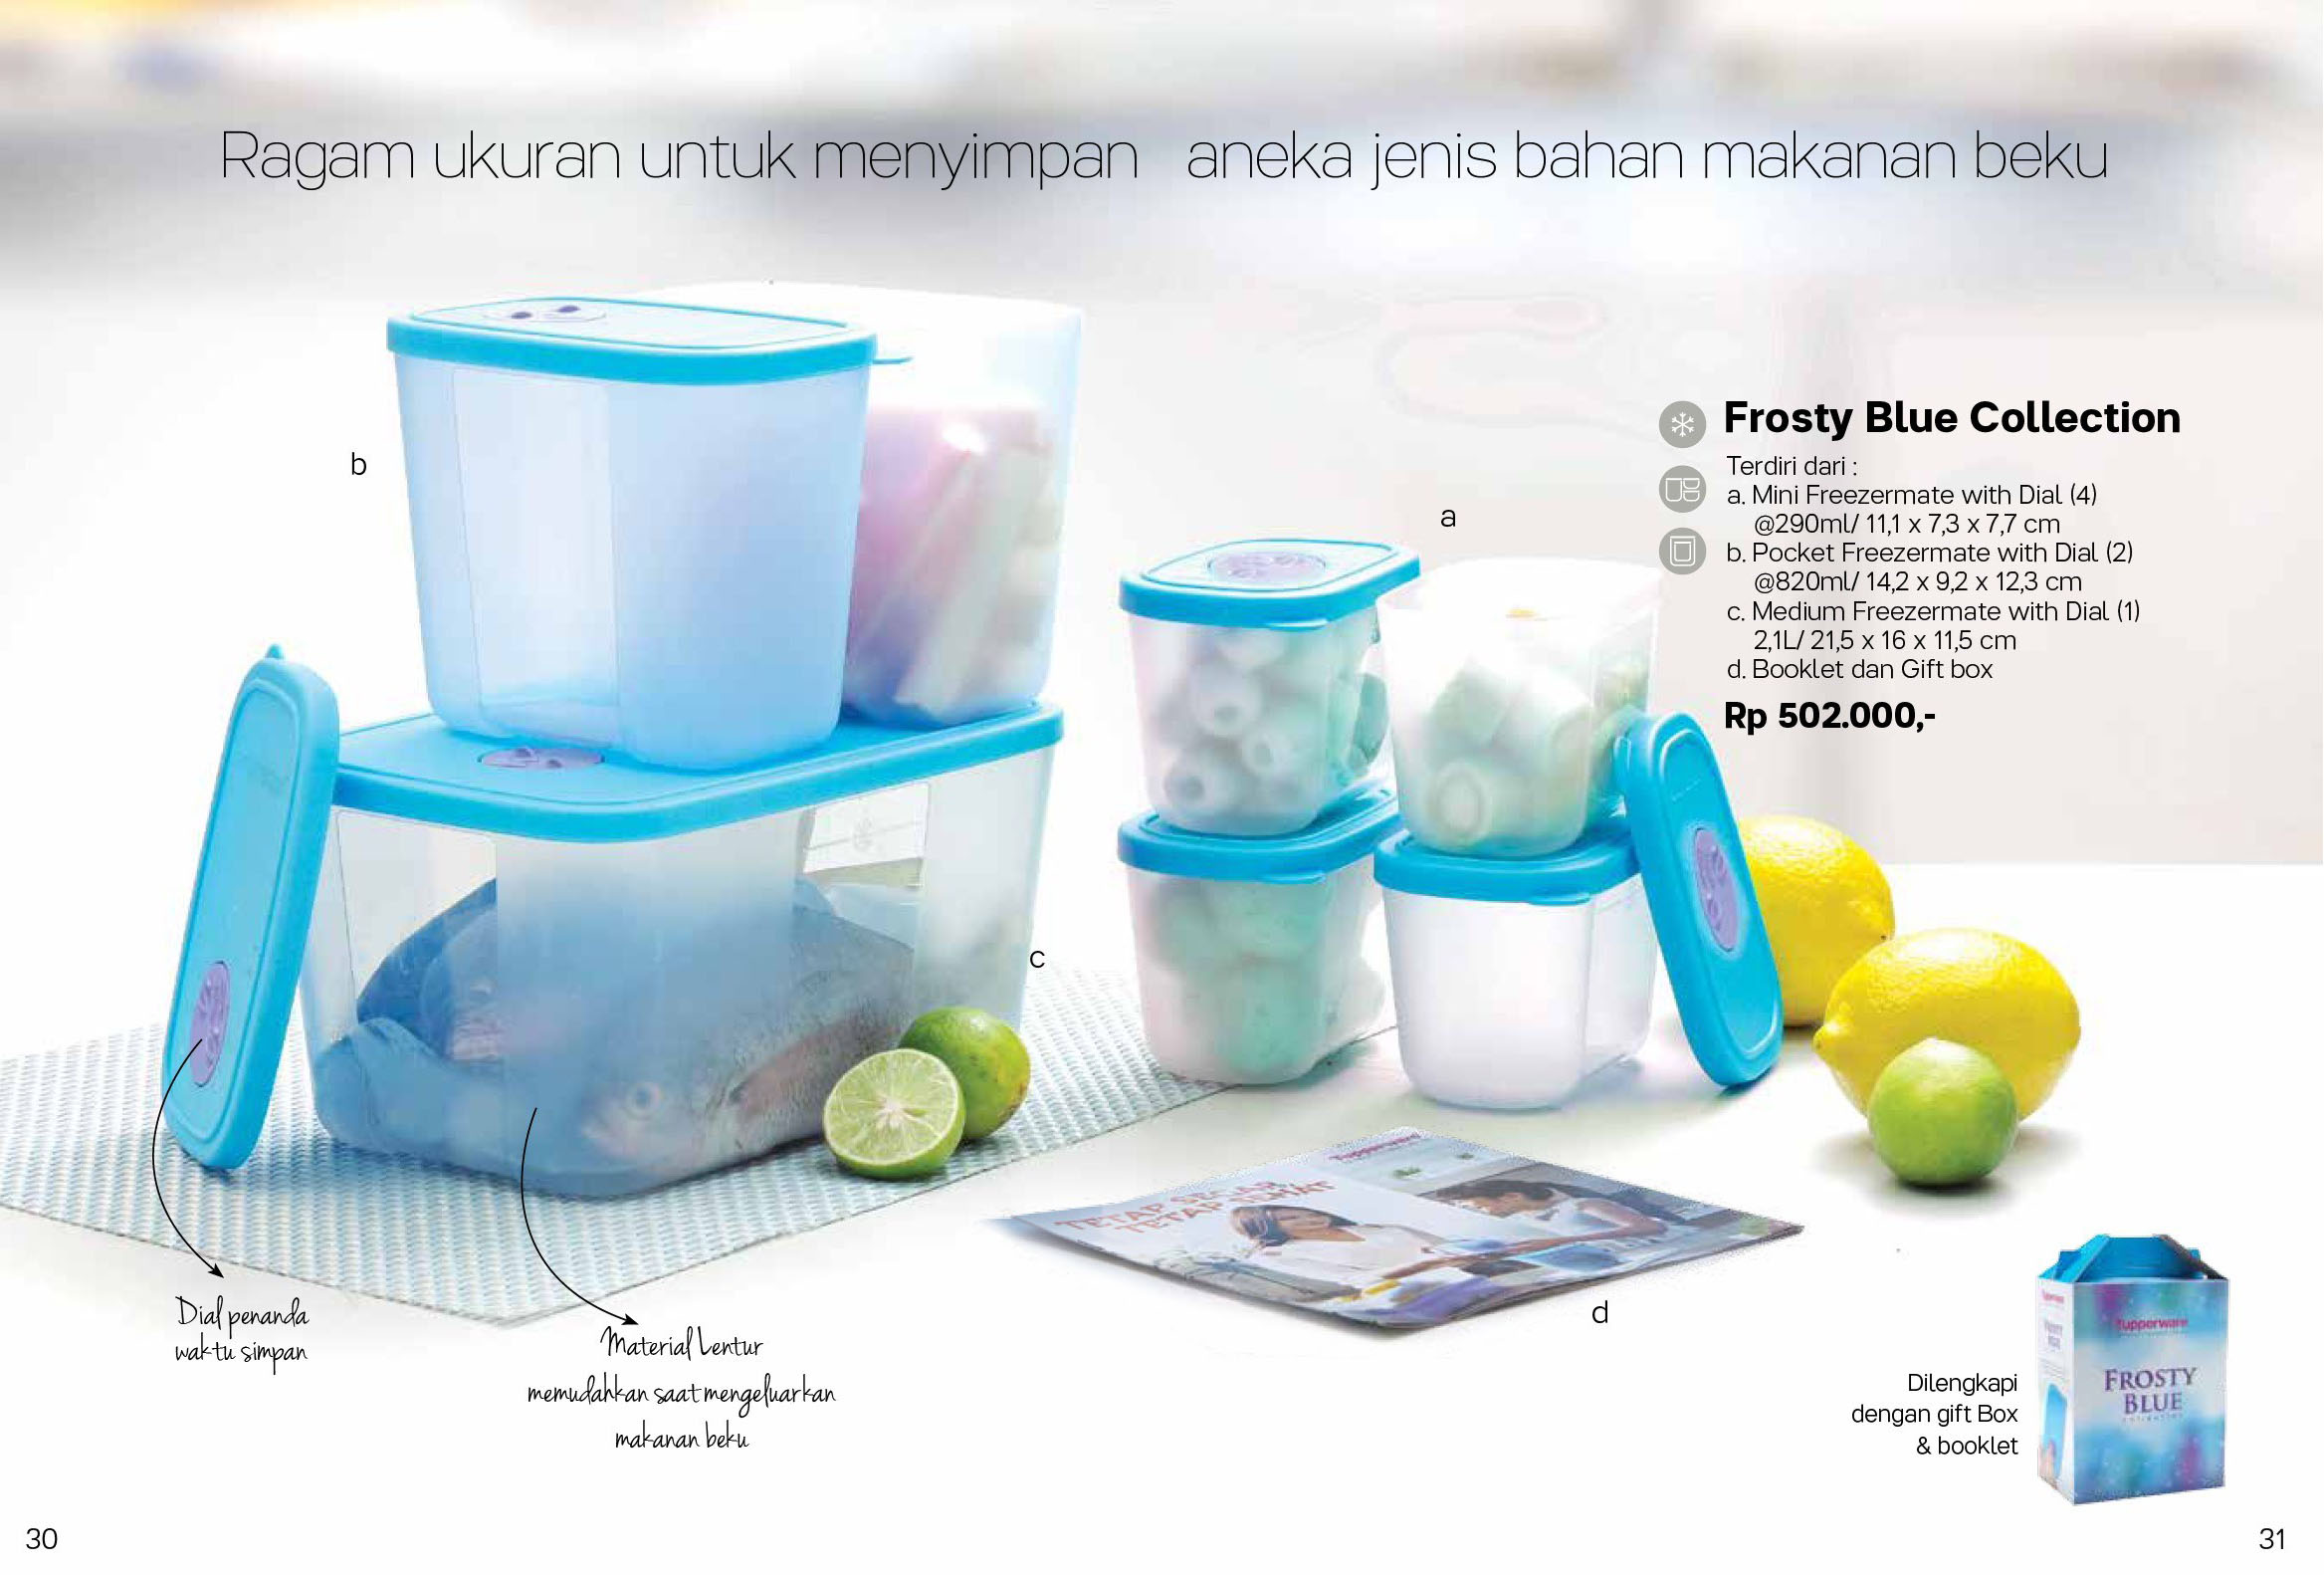 Frosty Blue Collection Tupperware | Katalog Promo Tupperware